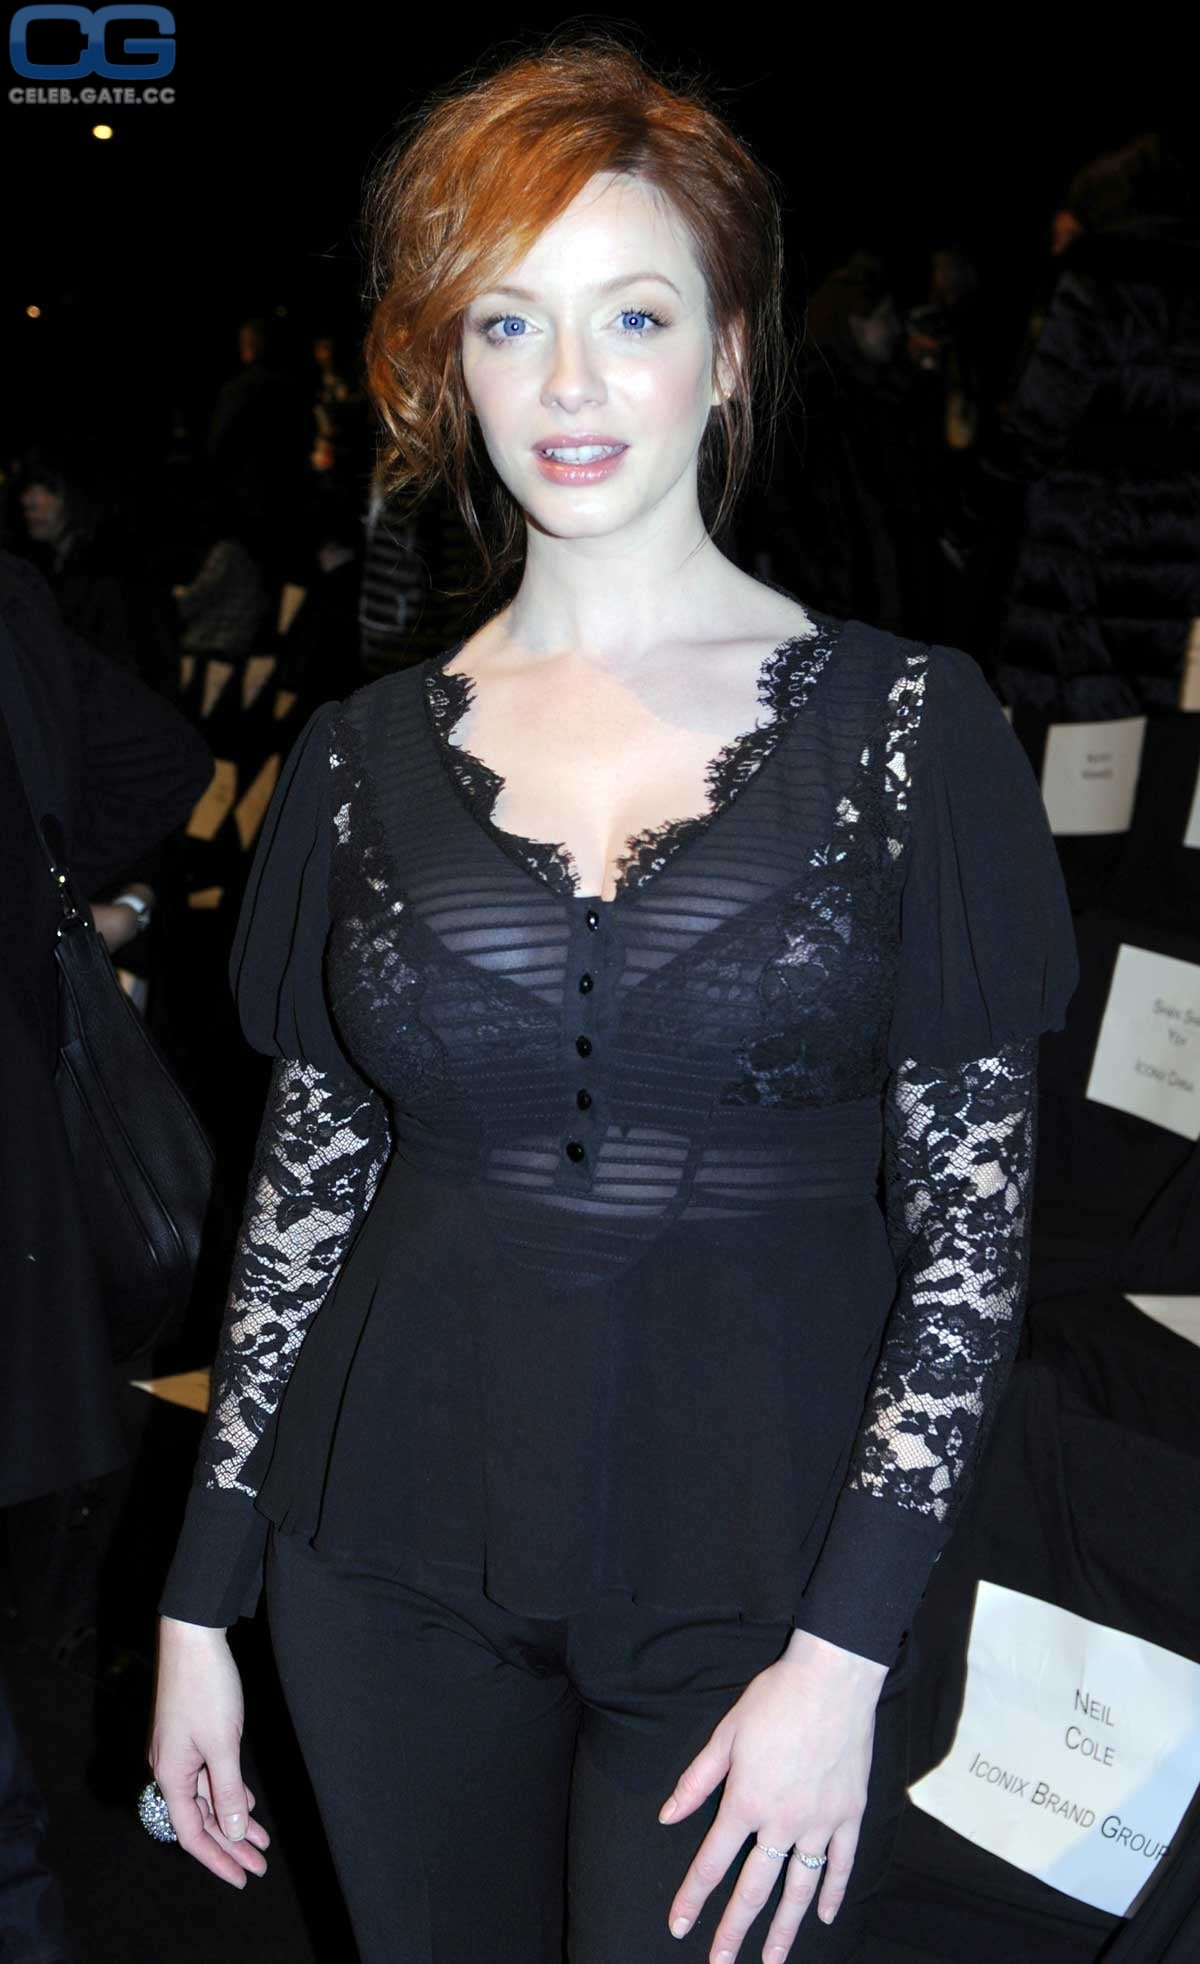 61 Sexiest Christina Hendricks Boobs Will Drive You Nuts For Her